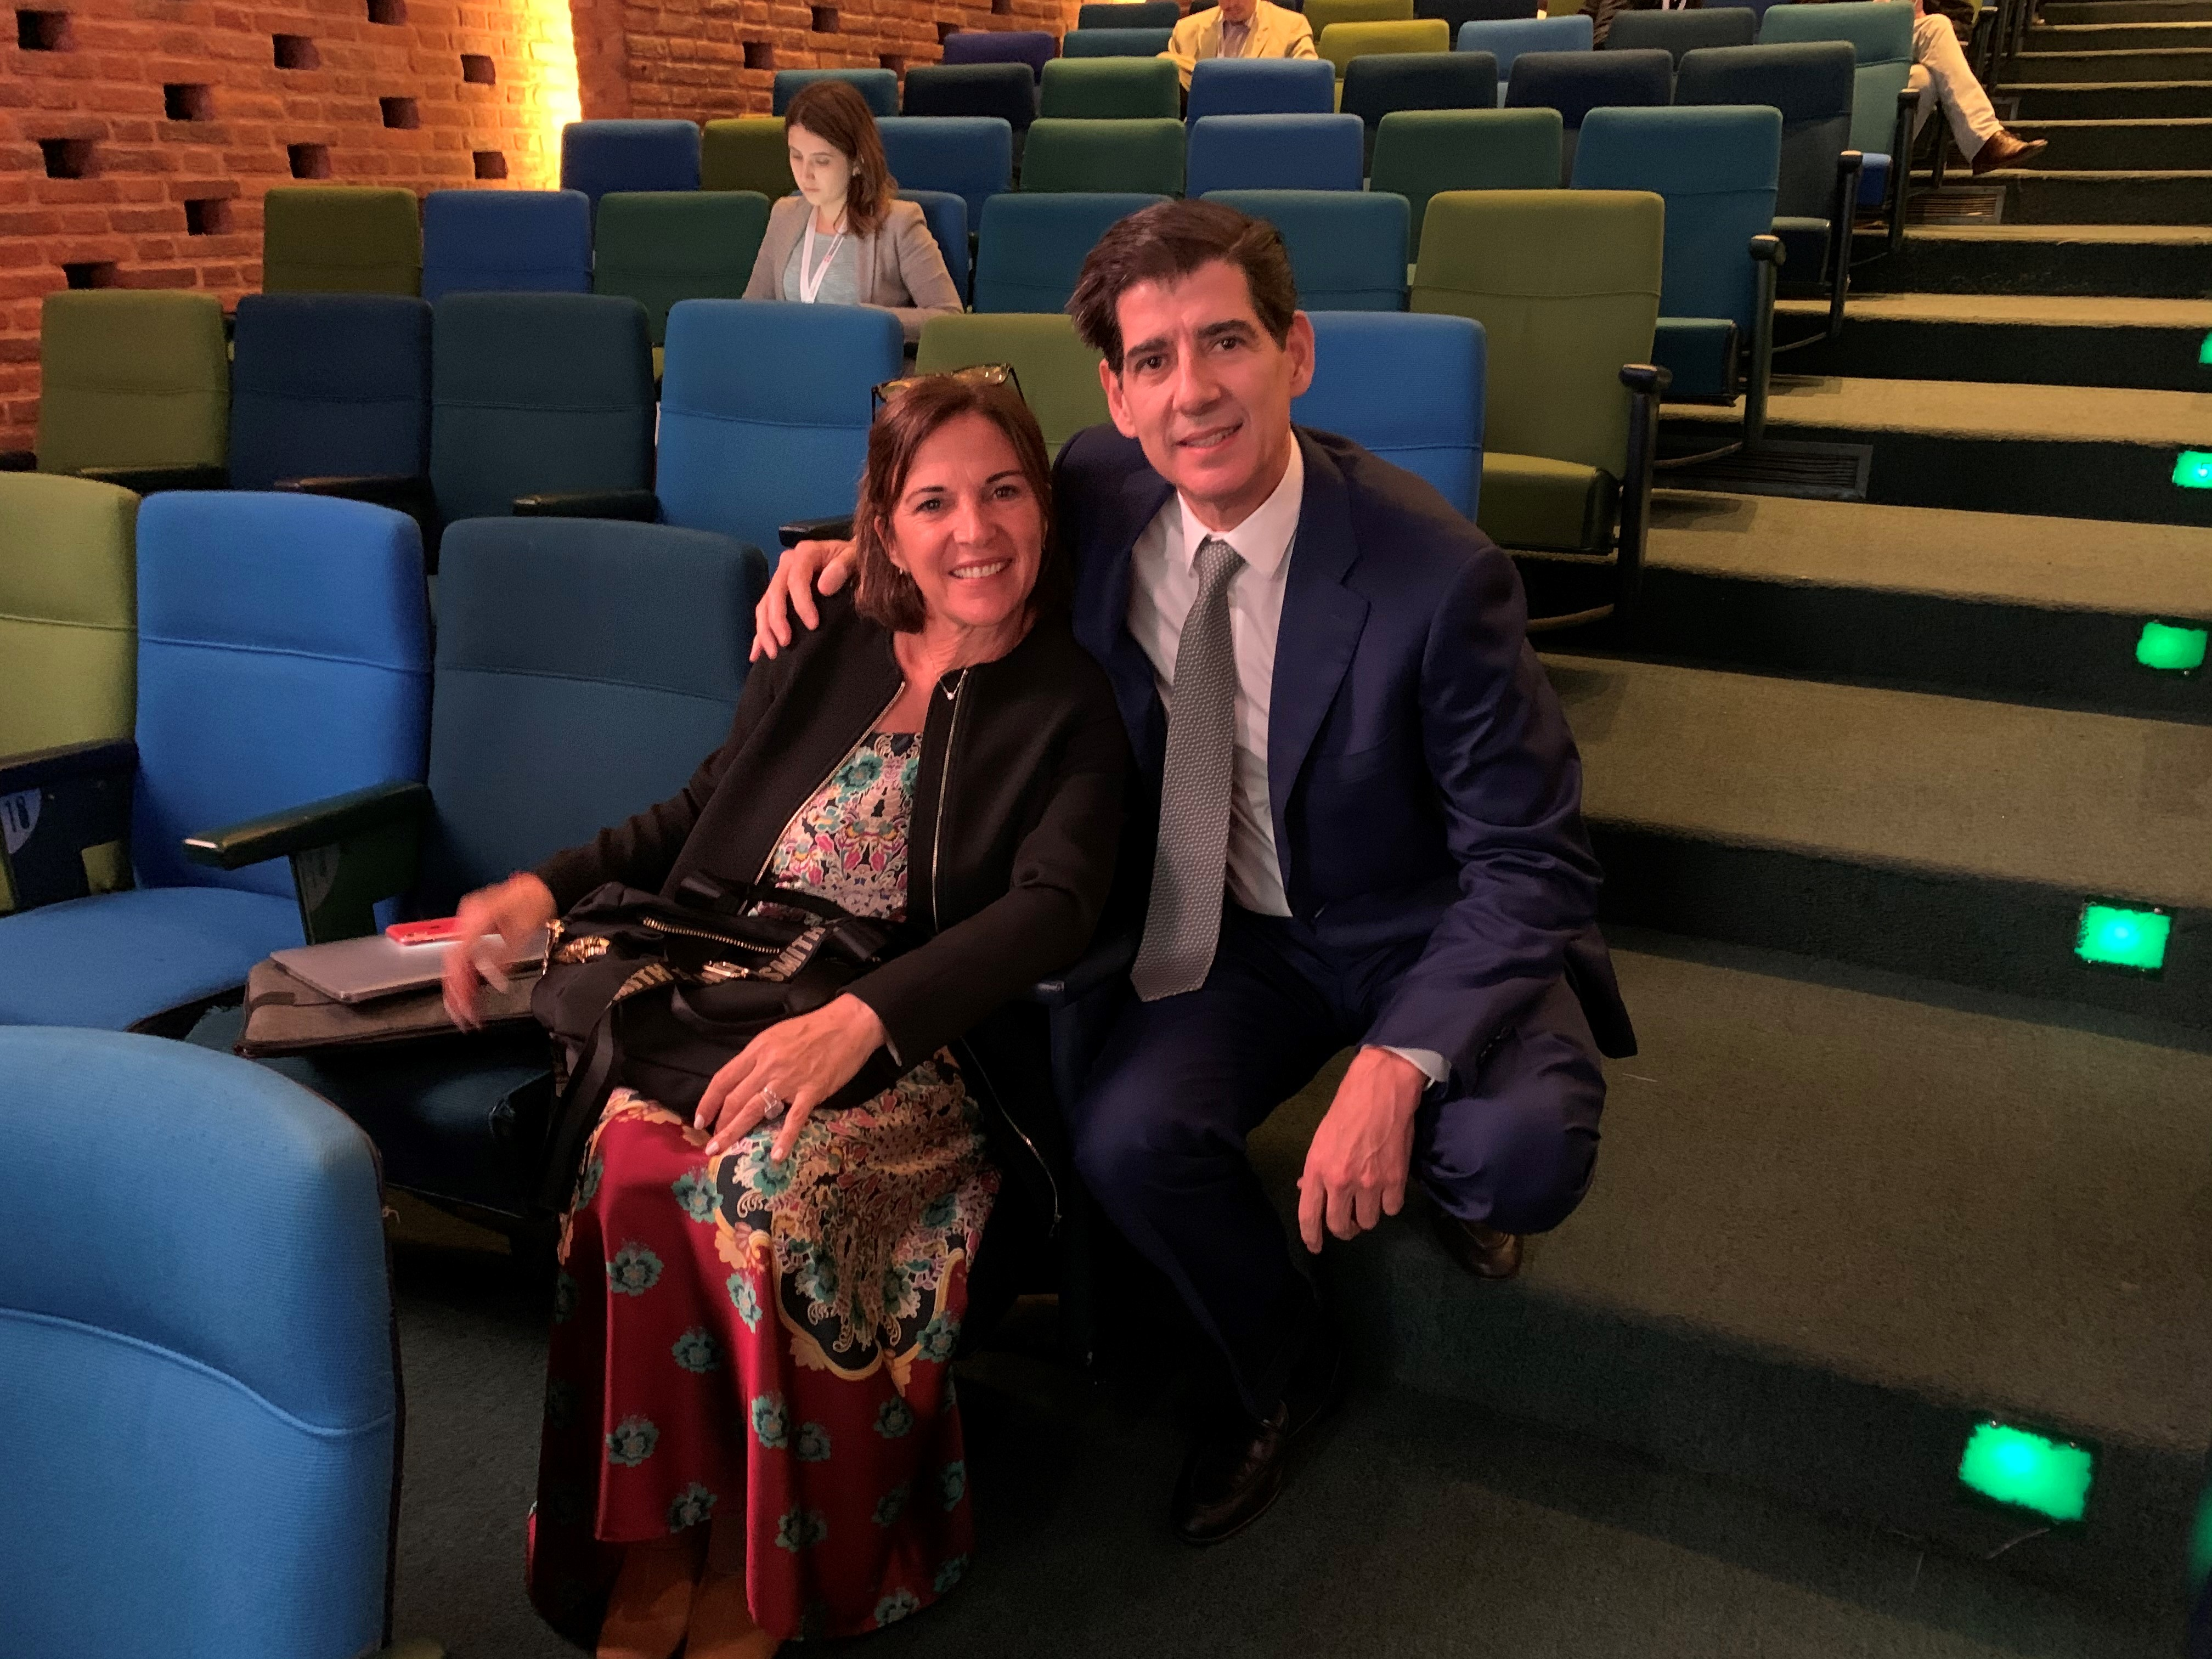 Dr. Piñal with the president of the congress, Dr Violeta Levy.